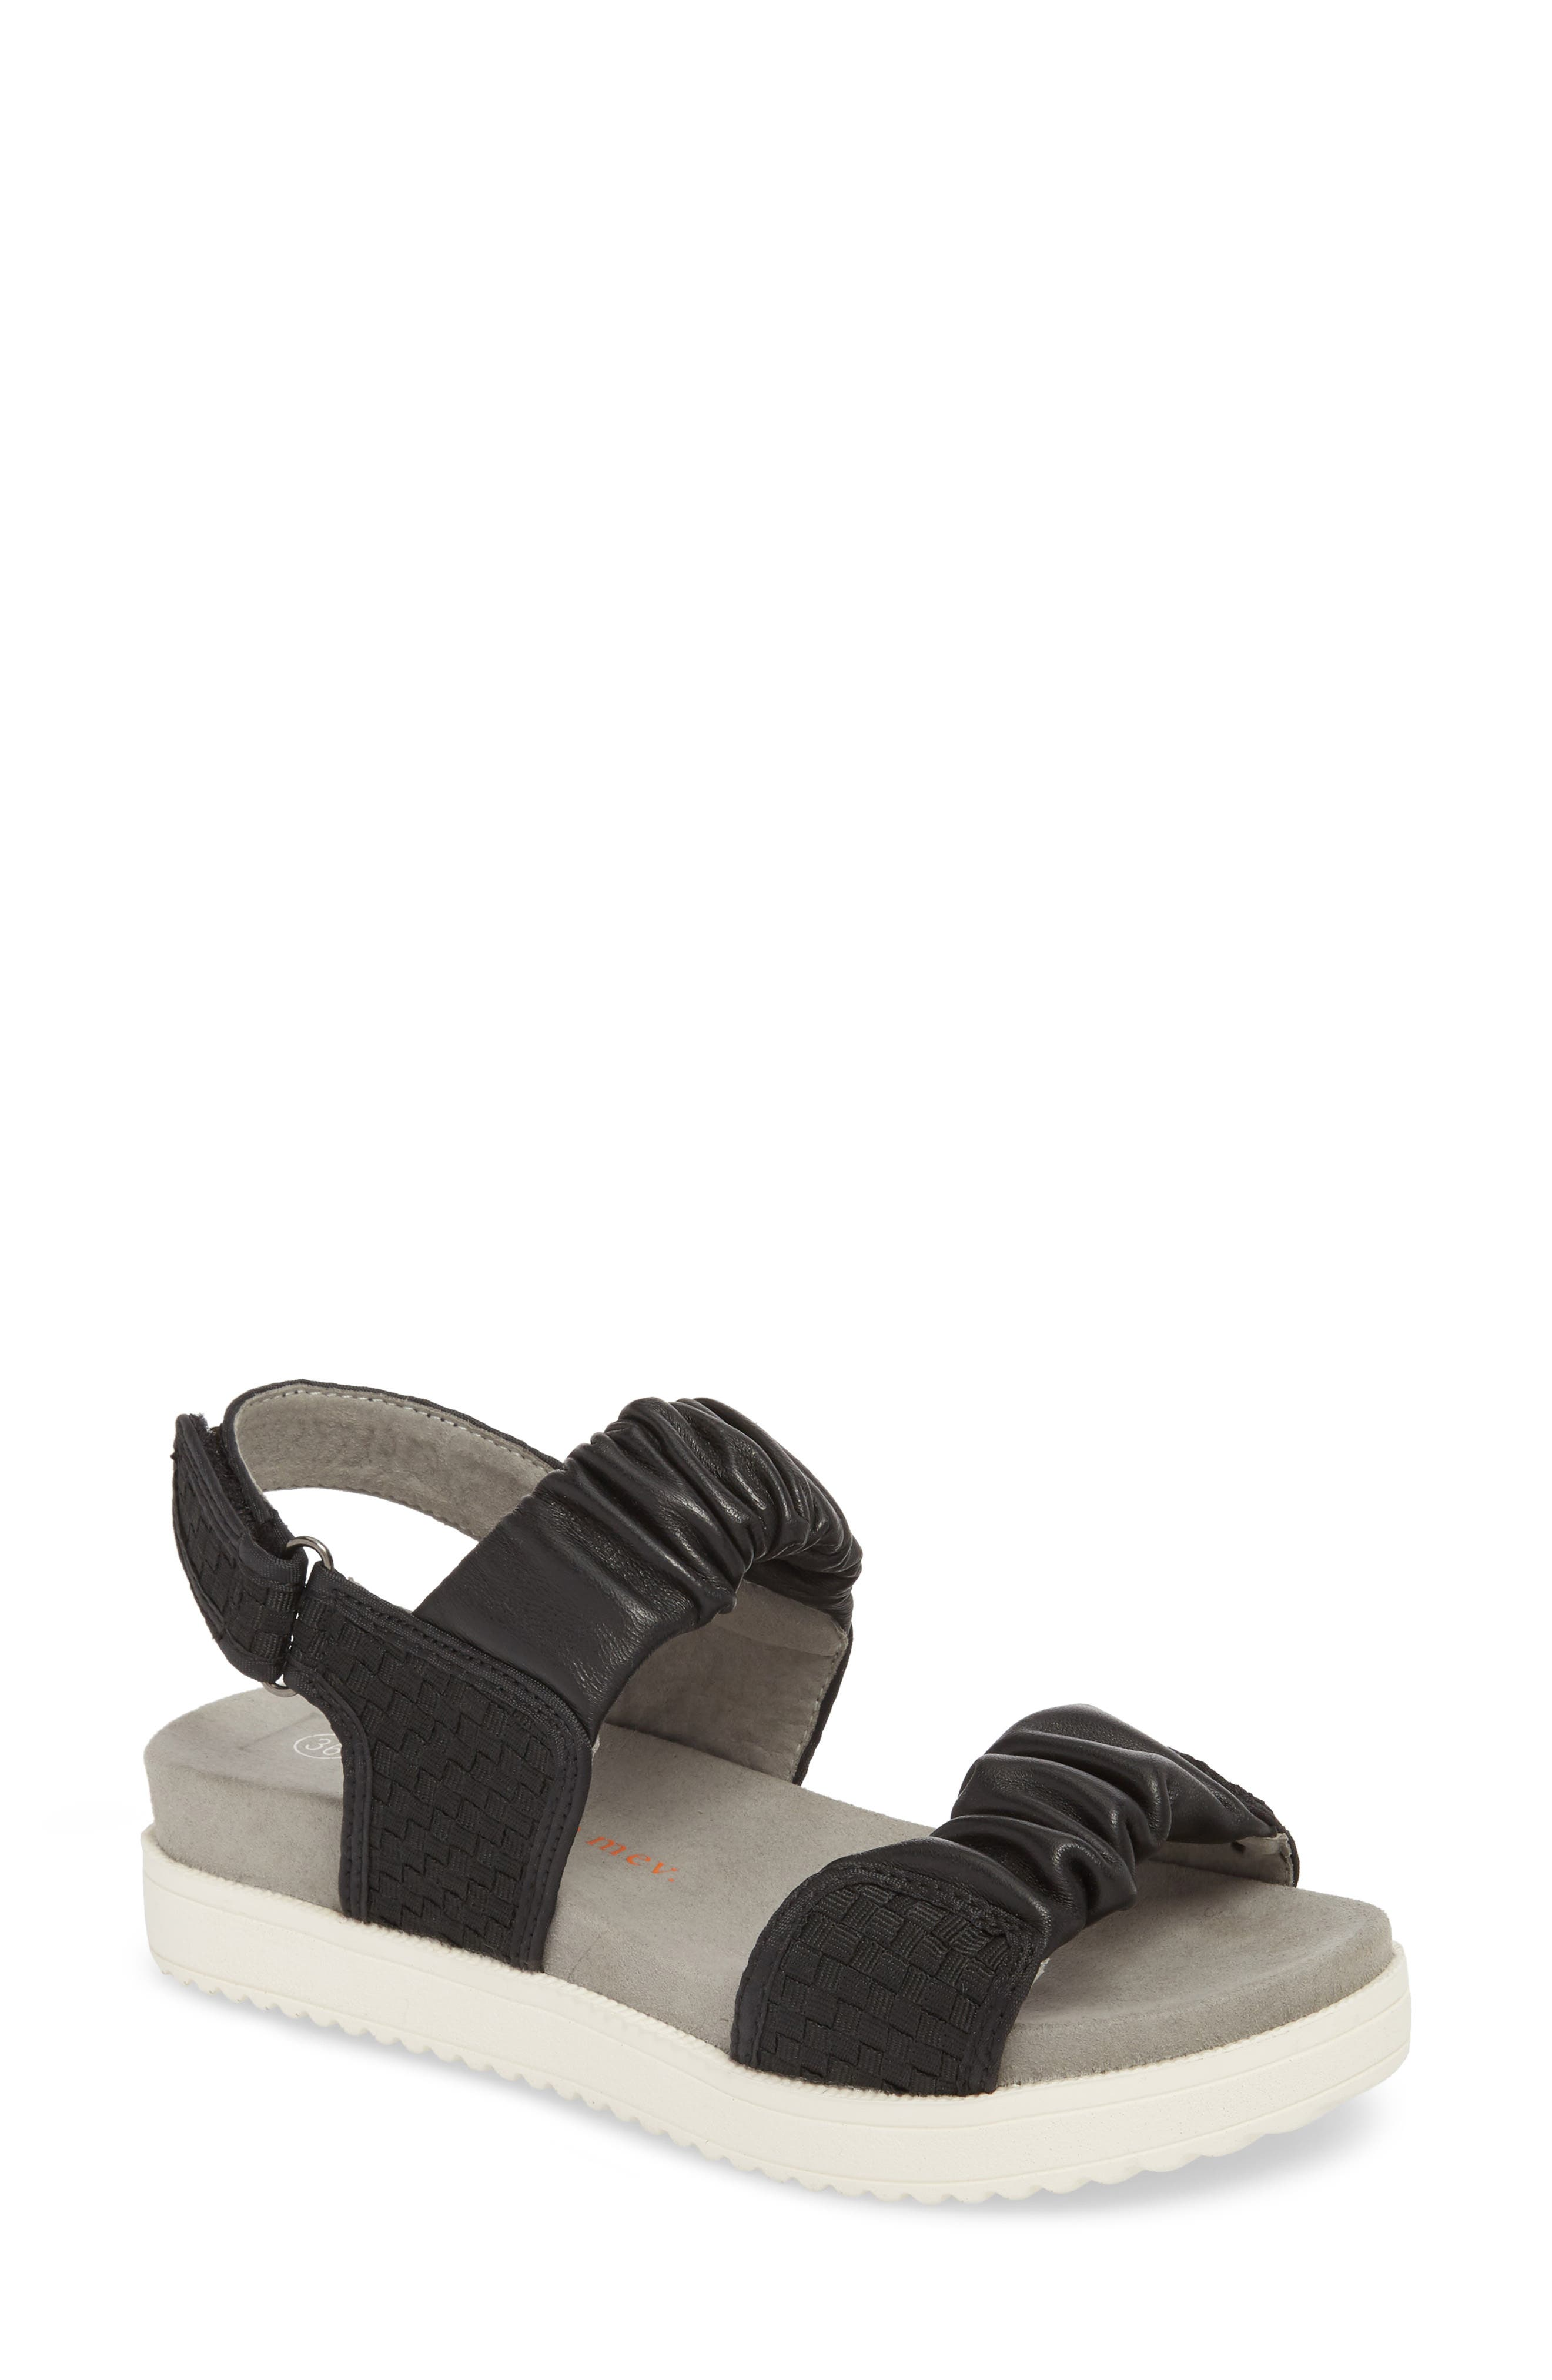 Fiji Sandal,                             Main thumbnail 1, color,                             Black/ Black Leather